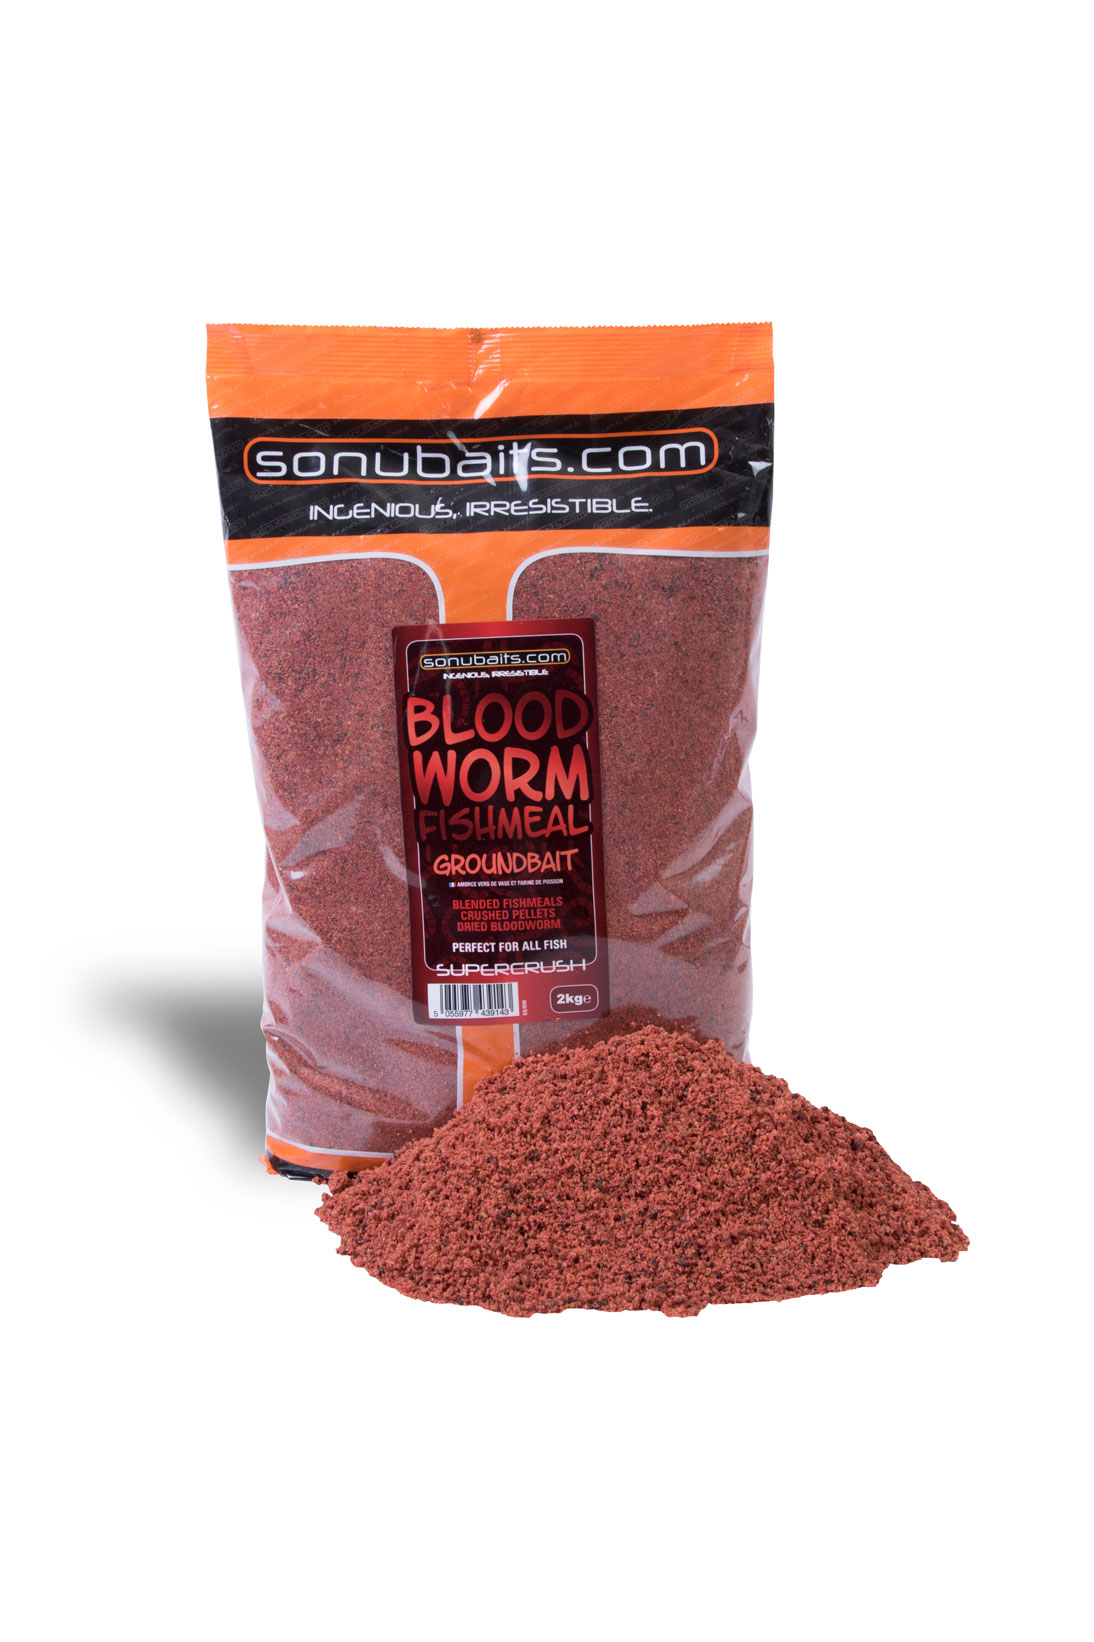 Bloodworm fishmeal